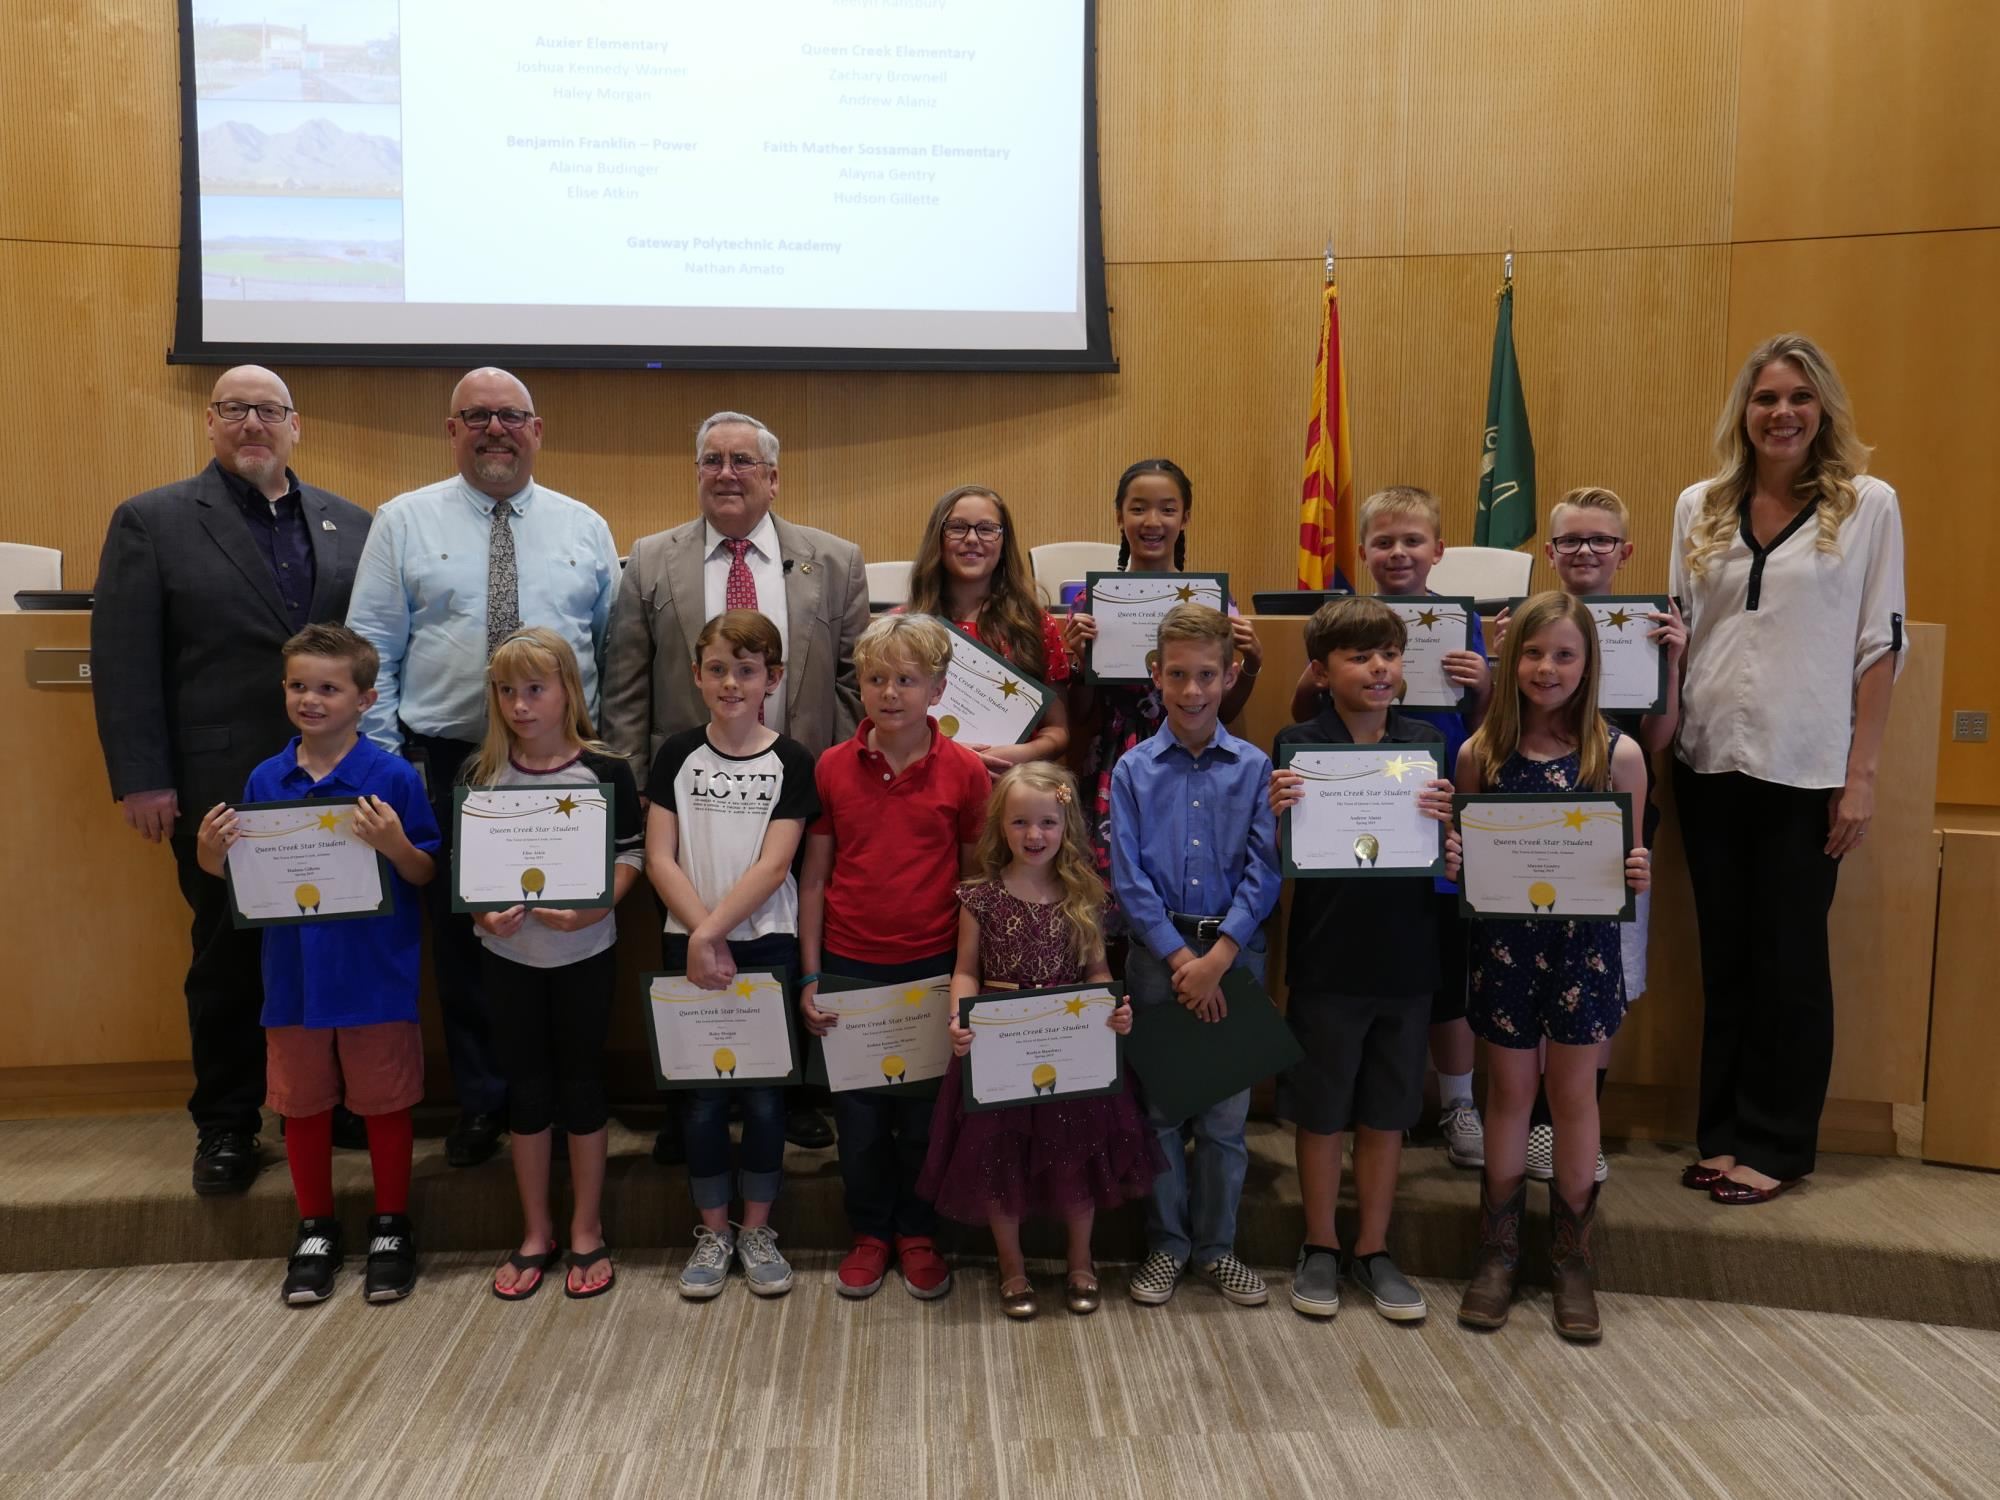 Mayor Barney, Vice Mayor Benning, and Council Members Brown and Wheatley with the Elementary Star Students on May 1